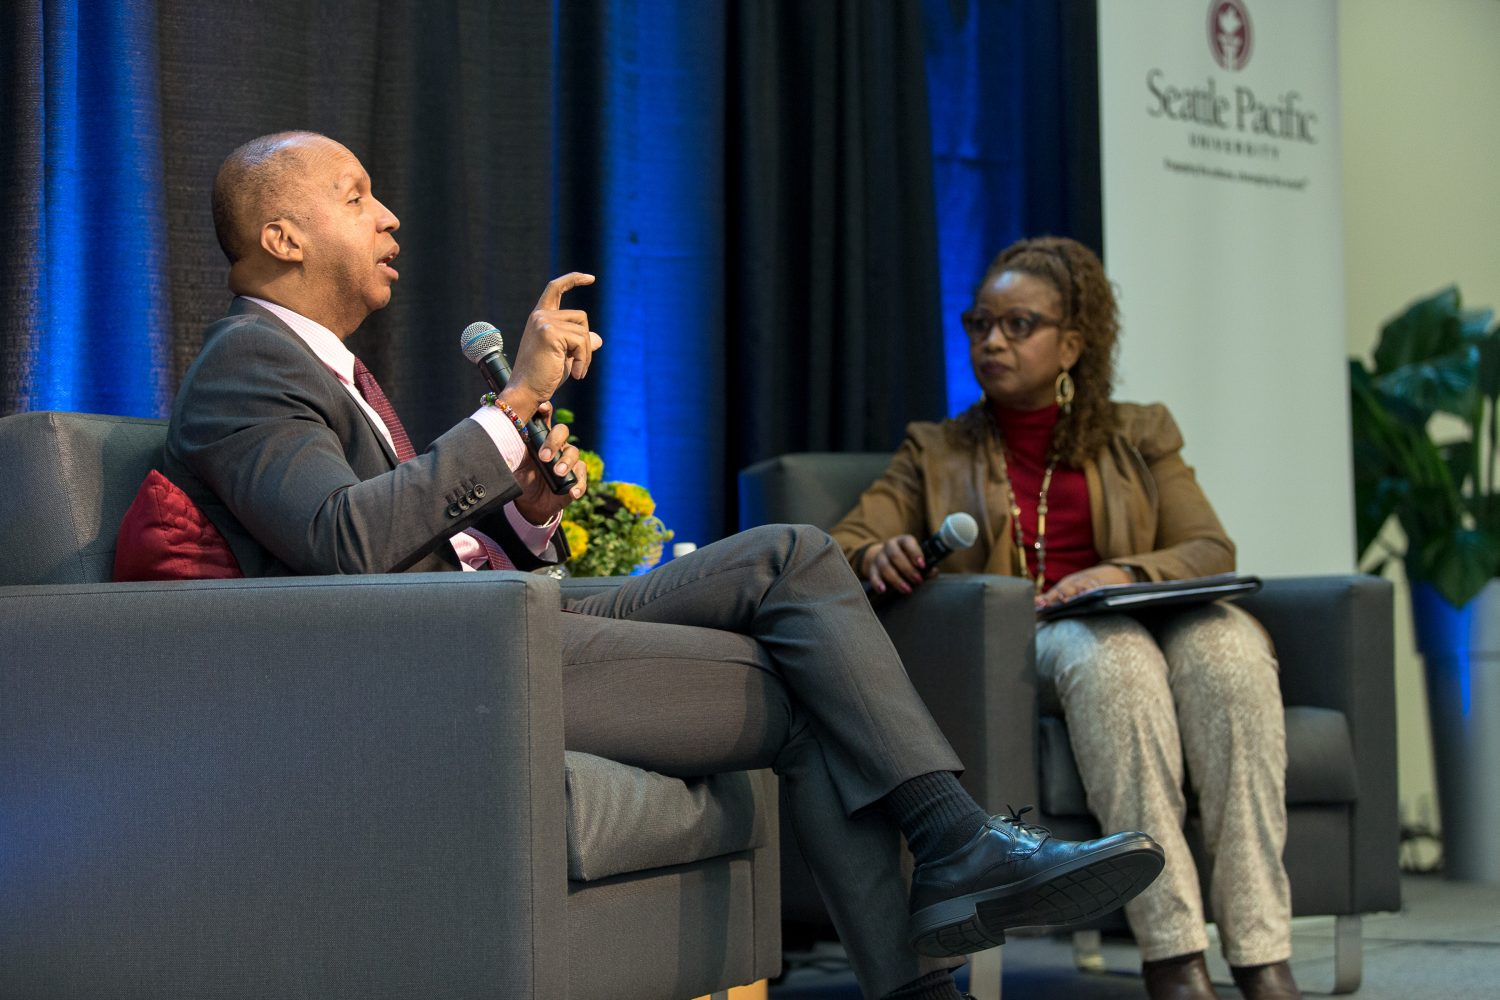 While visiting Seattle Pacific, Bryan Stevenson was also interviewed by Brenda Salter McNeil, associate professor of reconciliation studies and director of reconciliation studies at Seattle Pacific University.